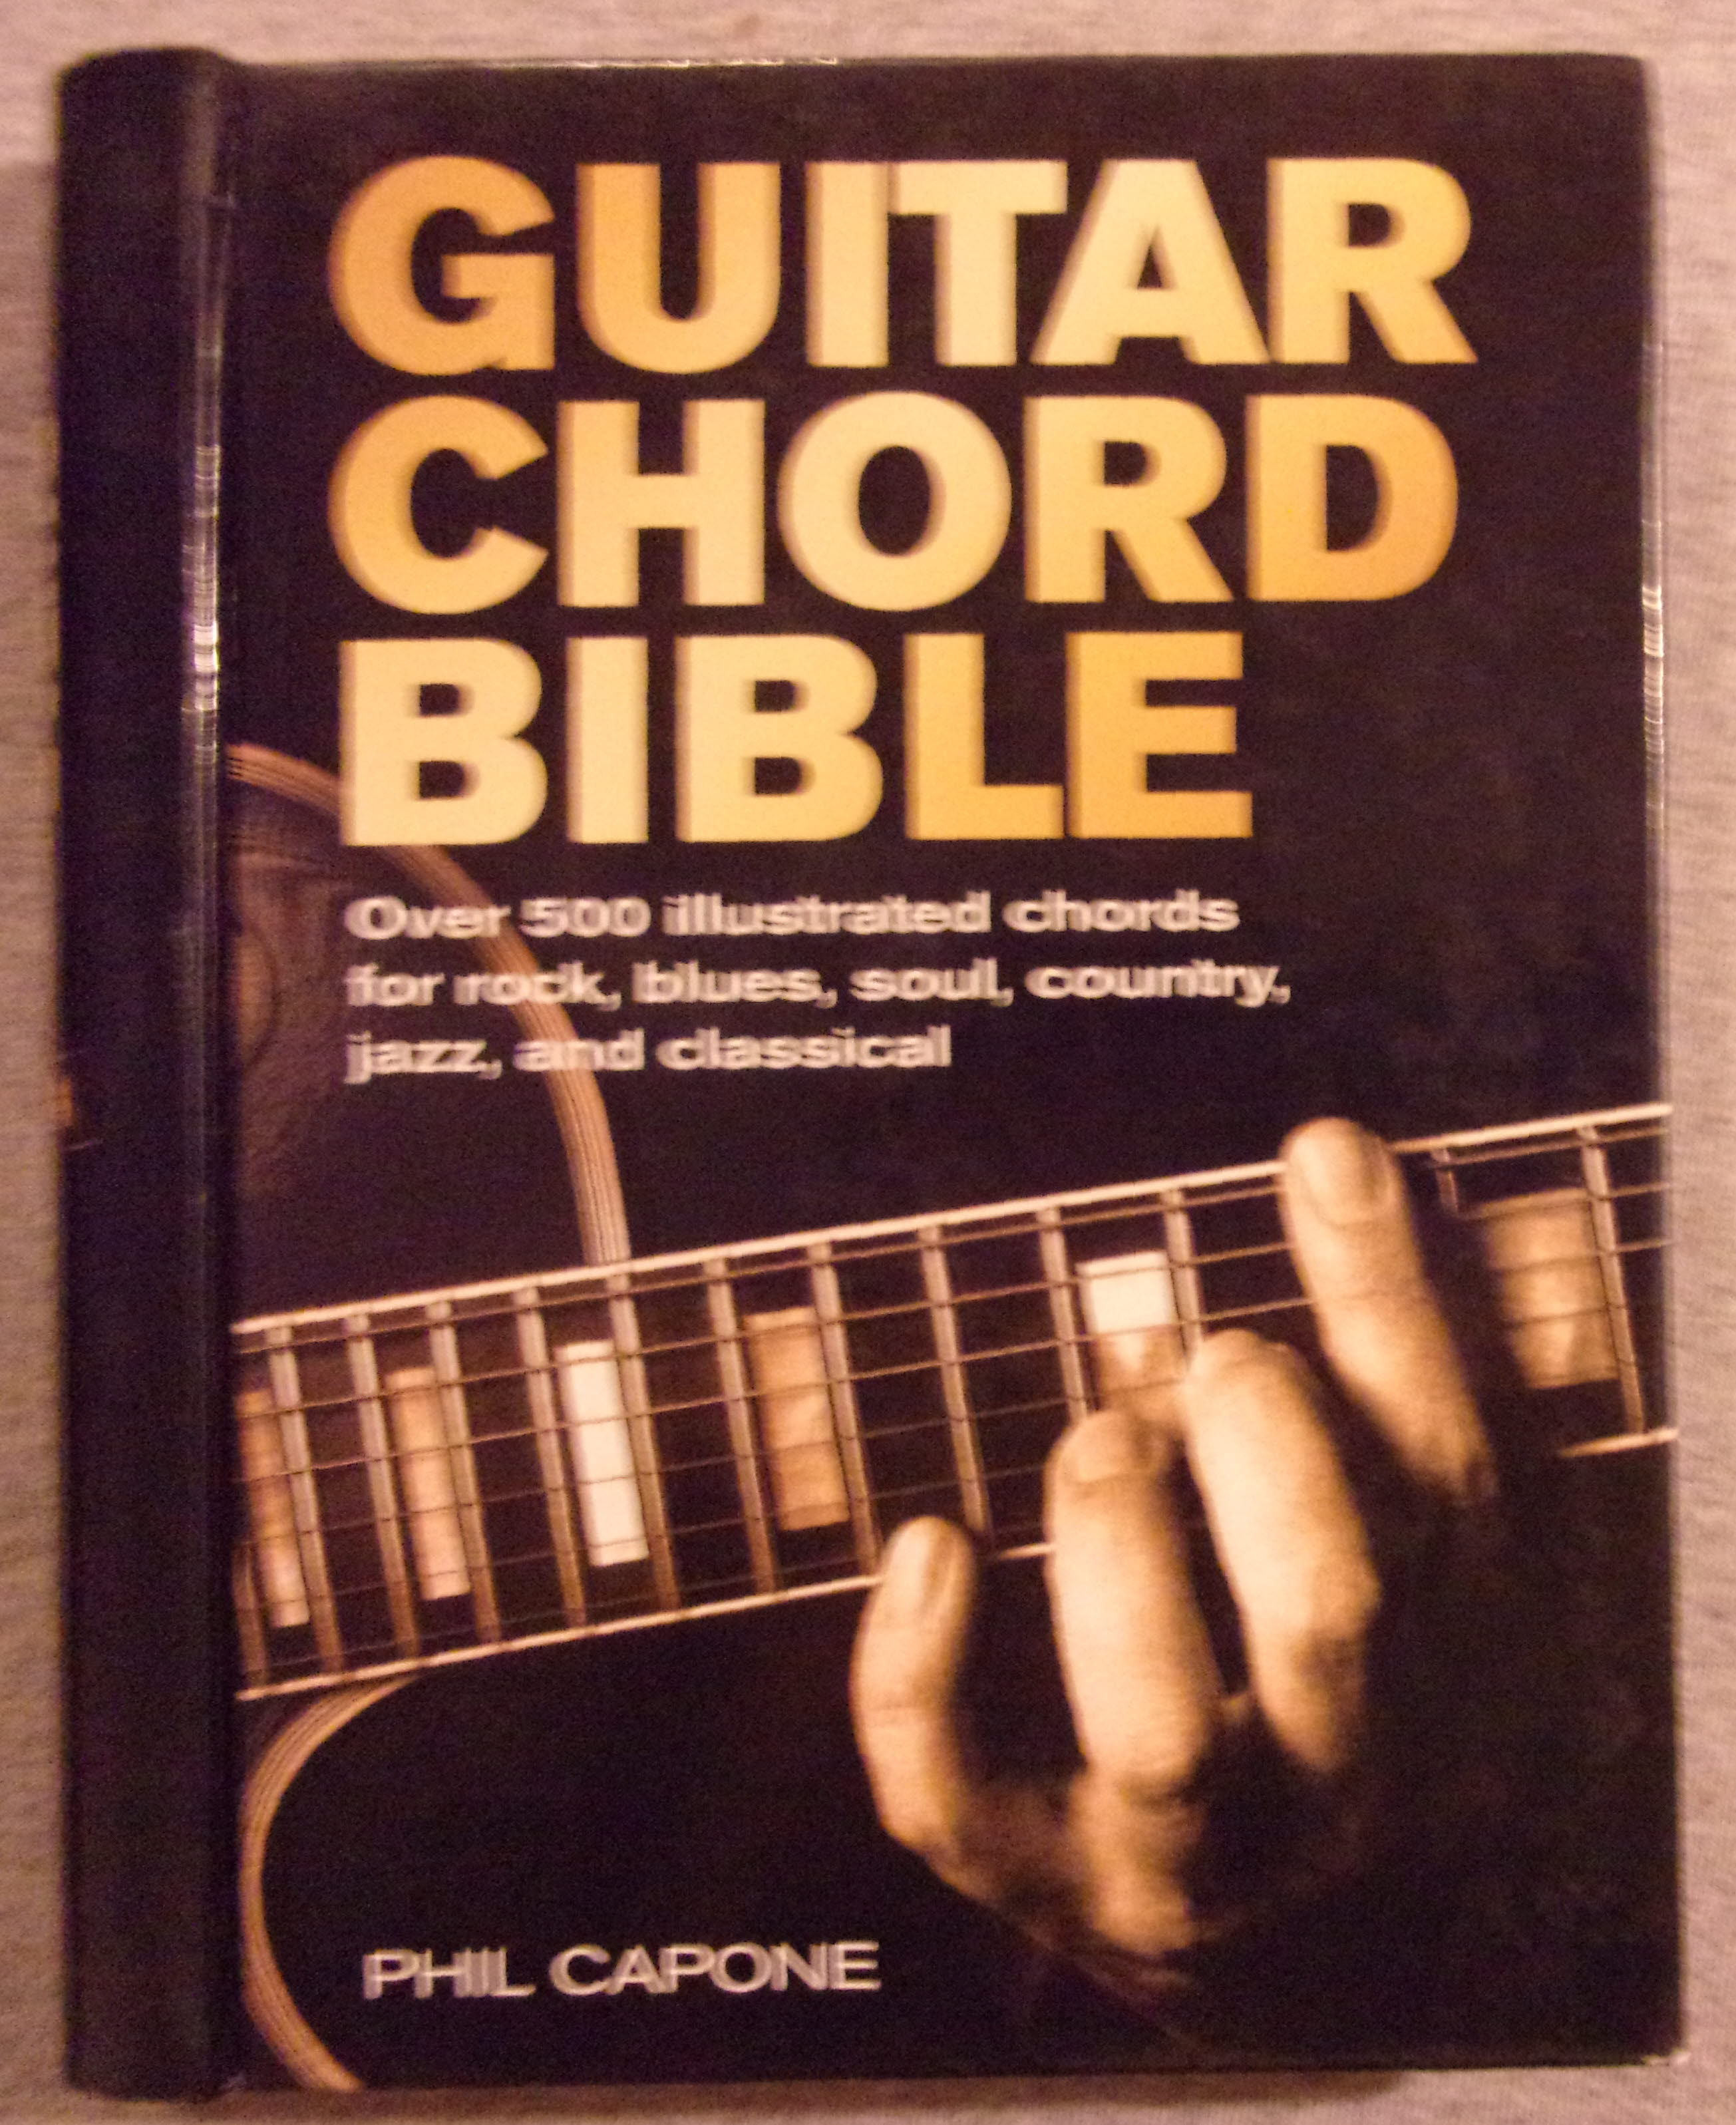 9780785820833 Guitar Chord Bible Over 500 Illustrated Chords For